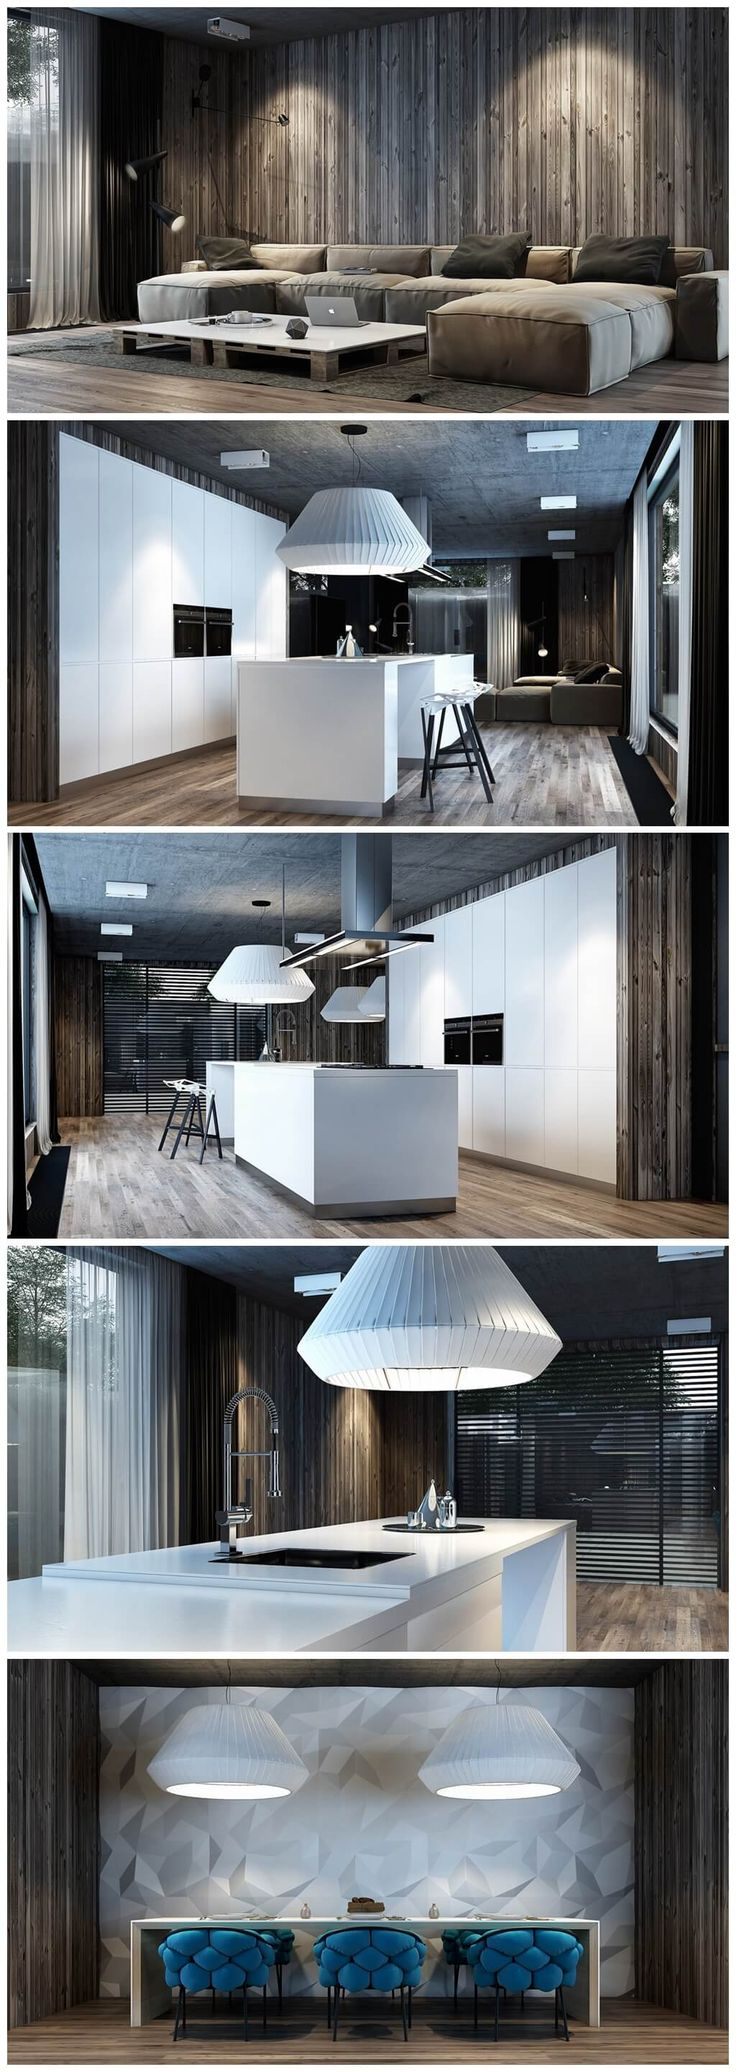 Light On collect 10 ideas for living room interior design with modern style.